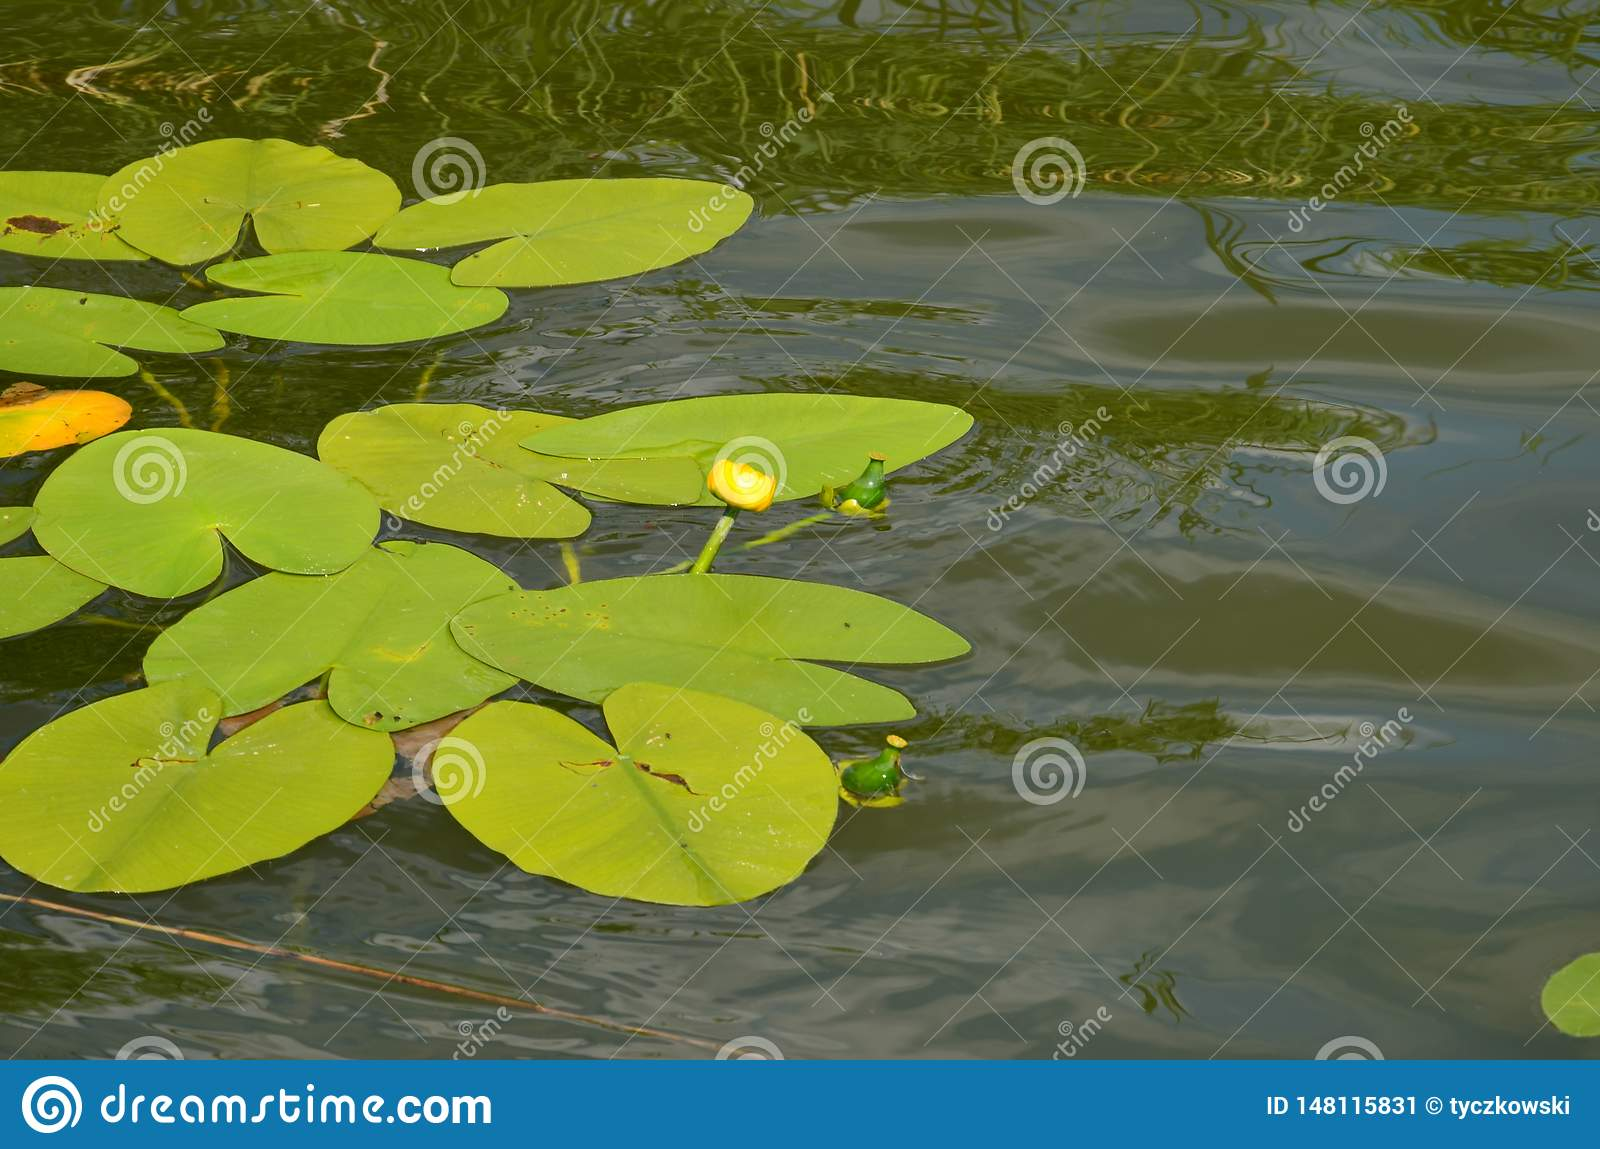 Water lily with yellow flowers on a lake in Poland - vacation and summertime